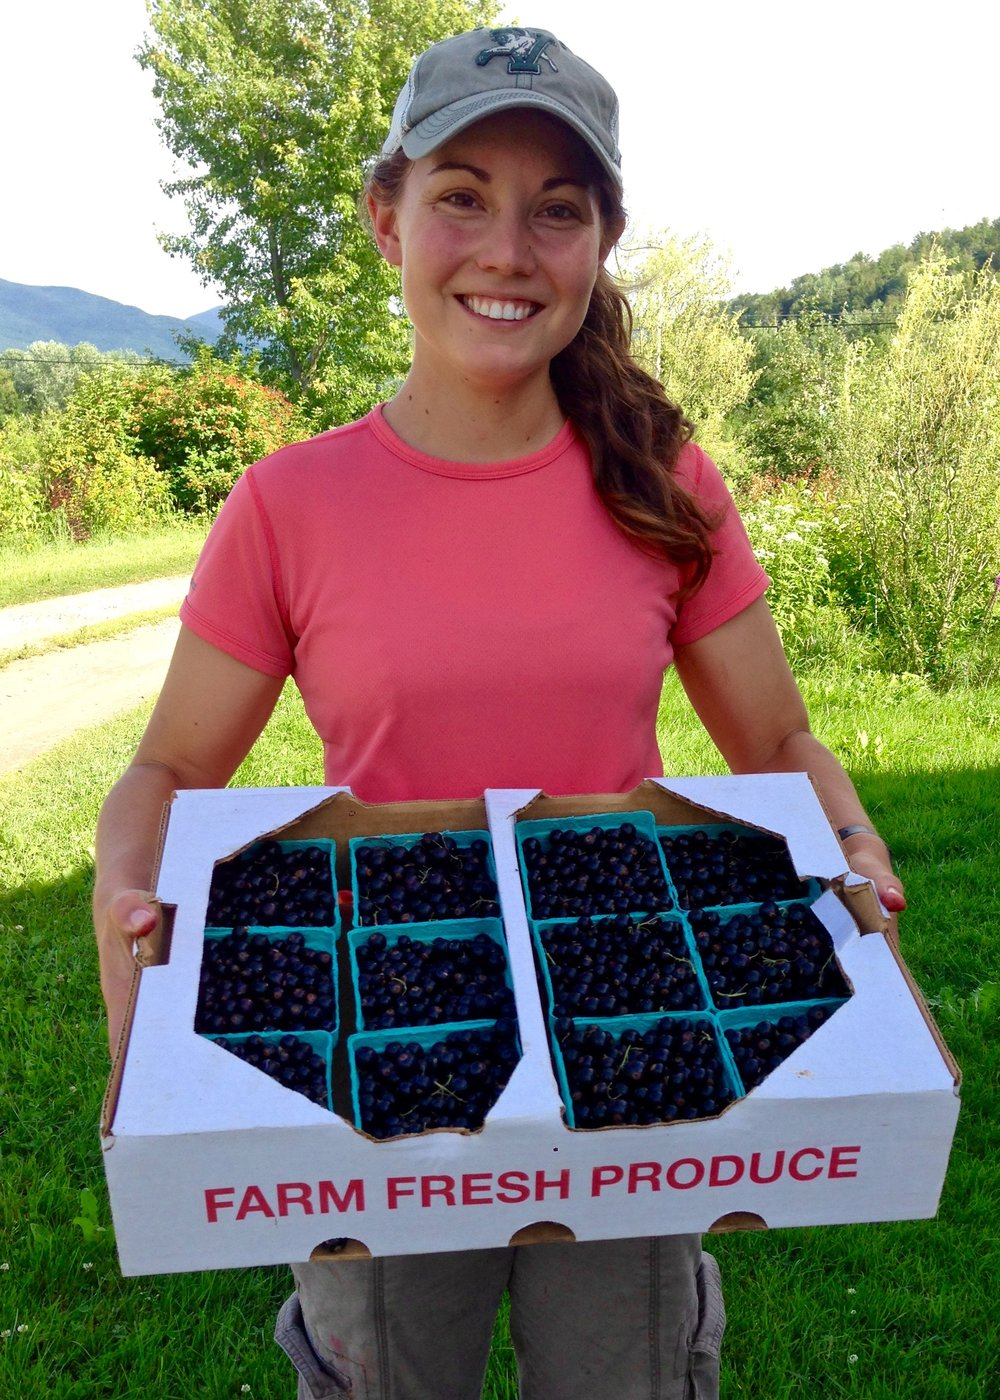 Alisha Utter (Sweetbranch Syrups LLC), farmer and syrup maker - Alisha grew up in New York's Hudson Valley. After earning a B.A. in Environmental Policy and Marine Science from the University of California, San Diego, she participated in the University of Vermont's Farmer Training Program in 2014. Along the way, she fell in love with Vermont. She is grateful to the farming community, especially mentor farmers Pam and Ray Allen (Allenholm Farm) and Nancy and John Hayden (The Farm Between - where the black currants pictured here were harvested).  Alisha is presently working on her PhD in Plant and Soil Science at the University of Vermont. Her research includes produce safety in New England and veganic farming in the United States. She was  recognized as the 2017-2018 James Beard Foundation scholar for the northeastern US. She presently serves as a board member for the Vermont Vegetable and Berry Growers Association, leadership member with the Vermont Young Farmers Coalition, and secretary of the Champlain Islands Farmers' Market.